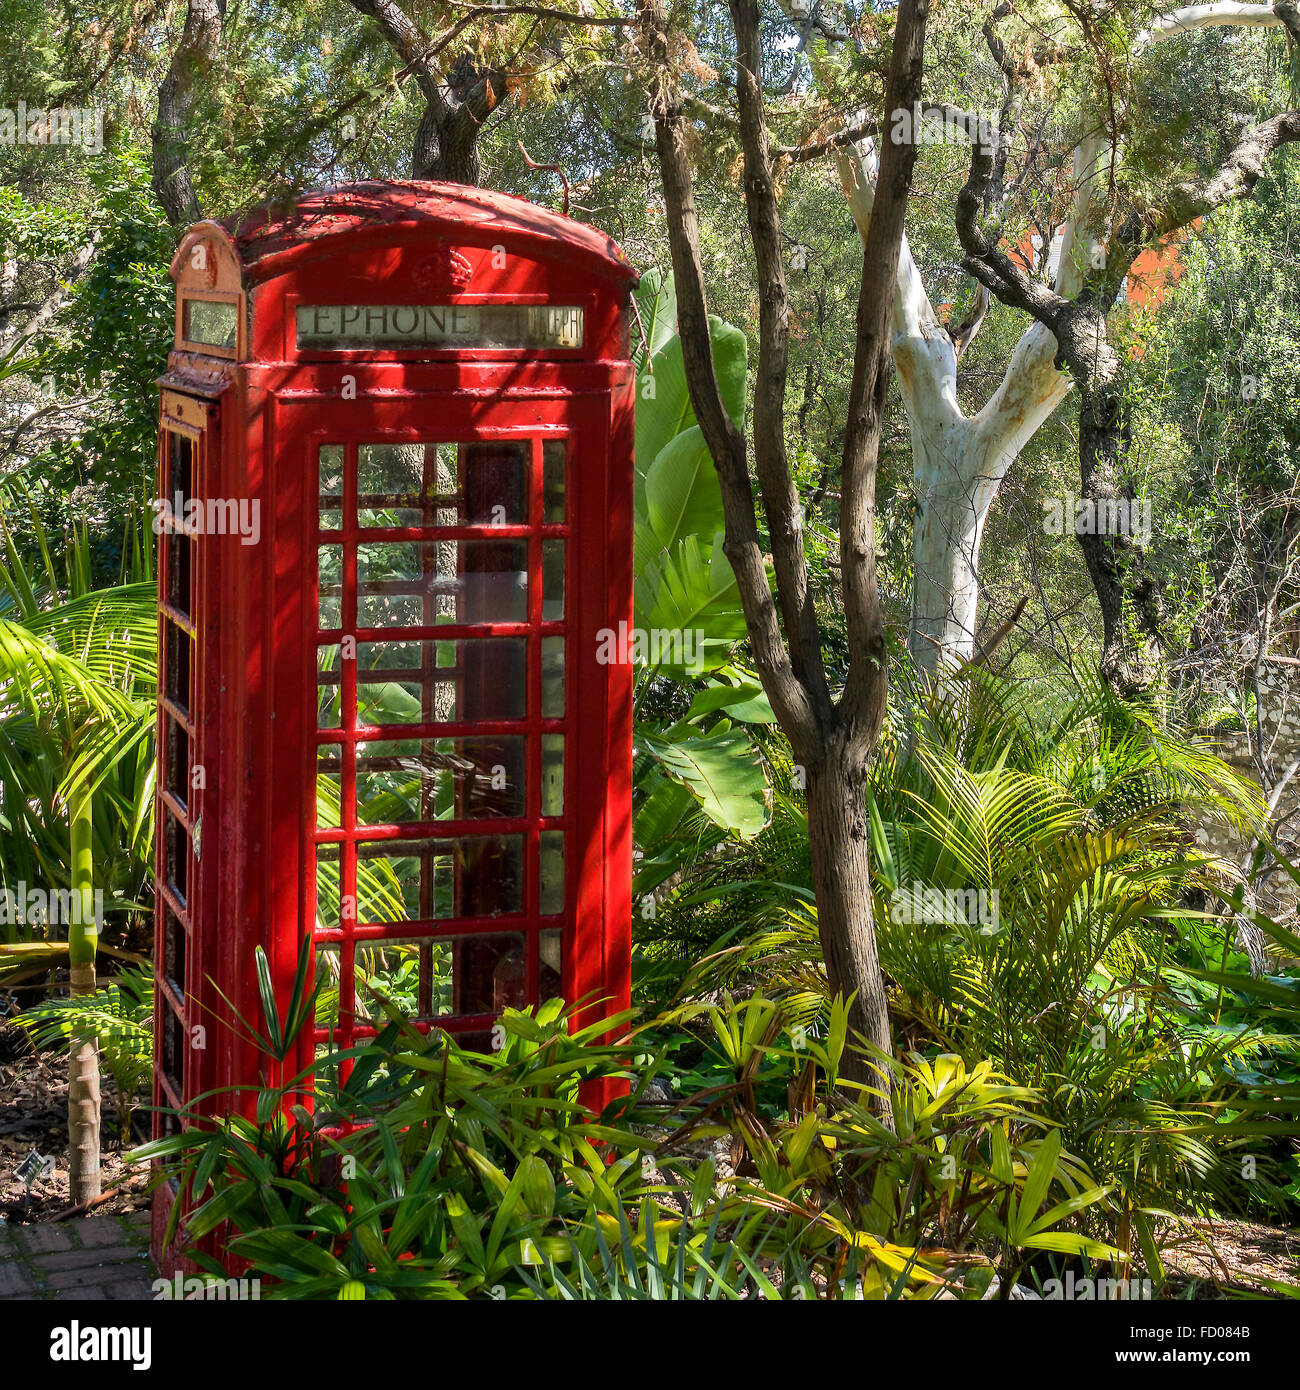 Telephone Box In The Woods Gibraltar - Stock Image